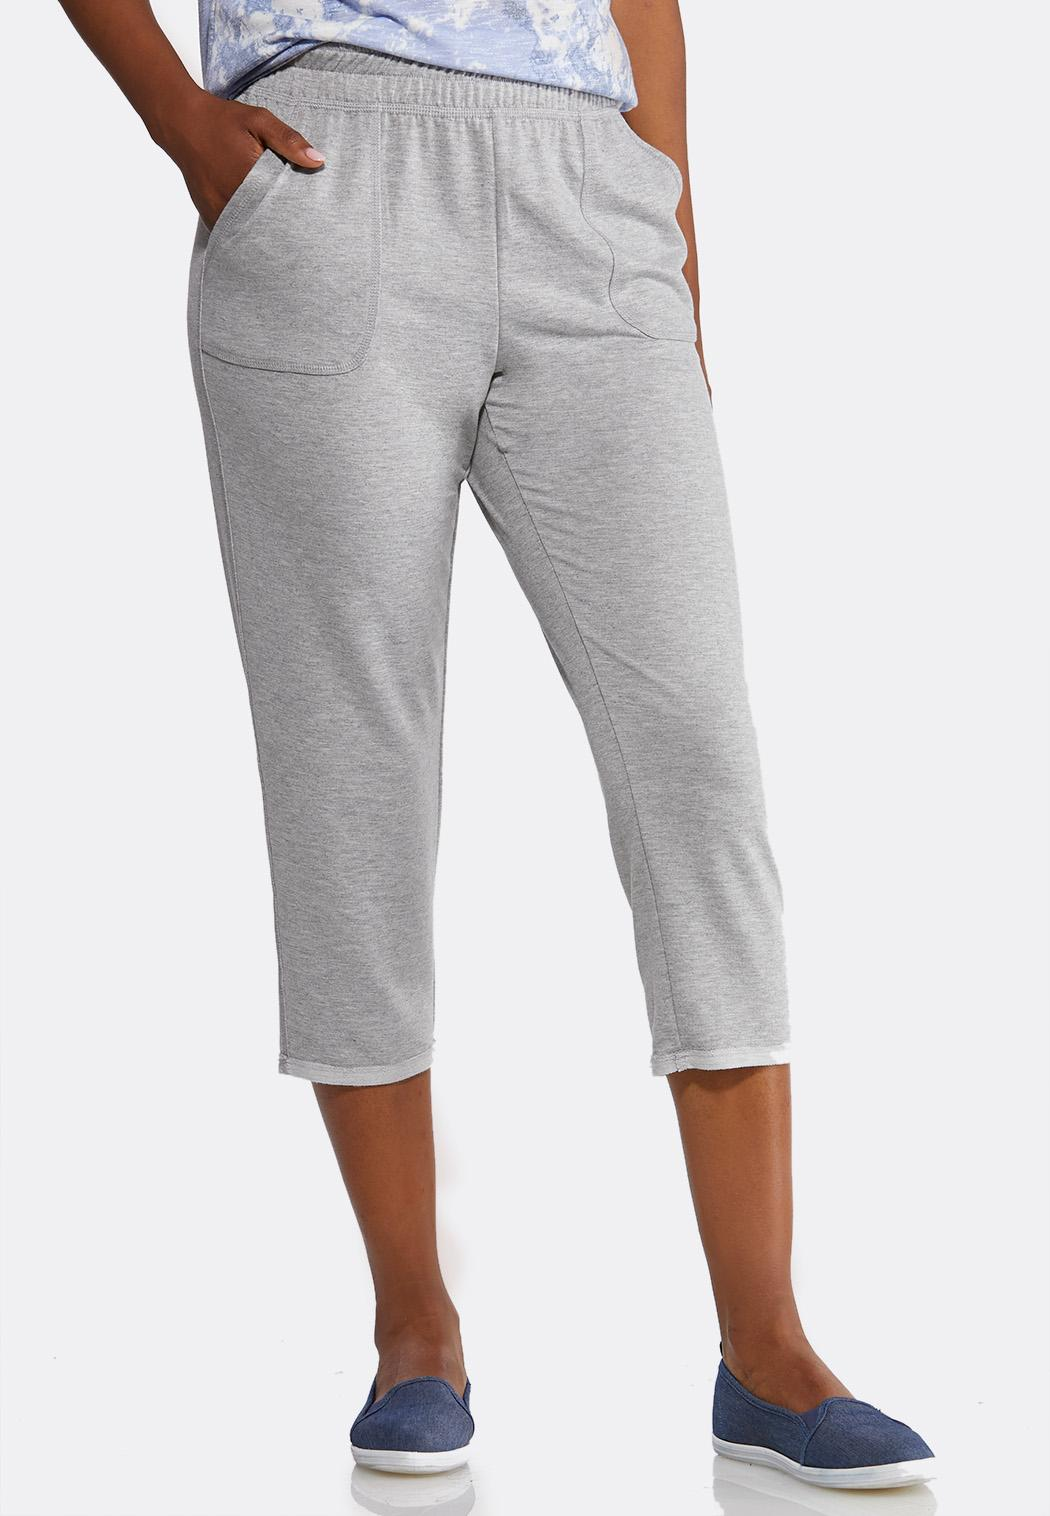 3aaecdd3a15 Cropped French Terry Pants alternate view Cropped French Terry Pants